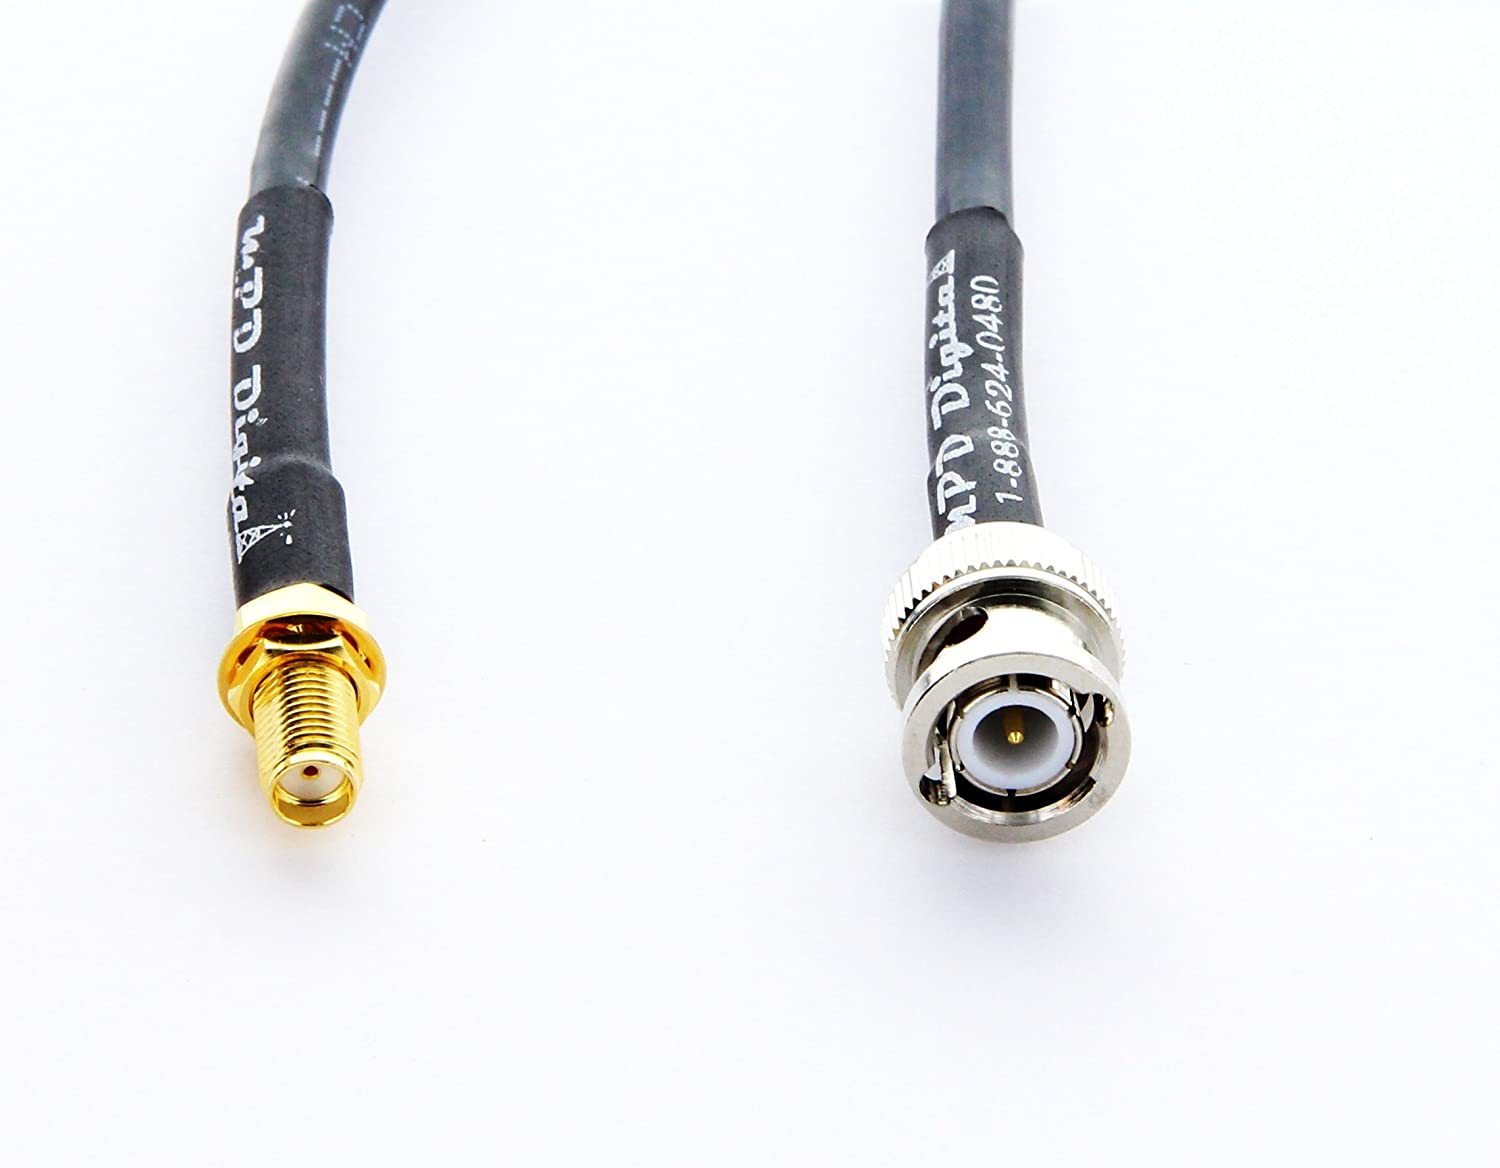 MPD Digital rg-58-sma-female-bnc-male-3ft RF coaxial cable SMA female to BNC male USA Made MILSPEC RG58 cable 3 feet